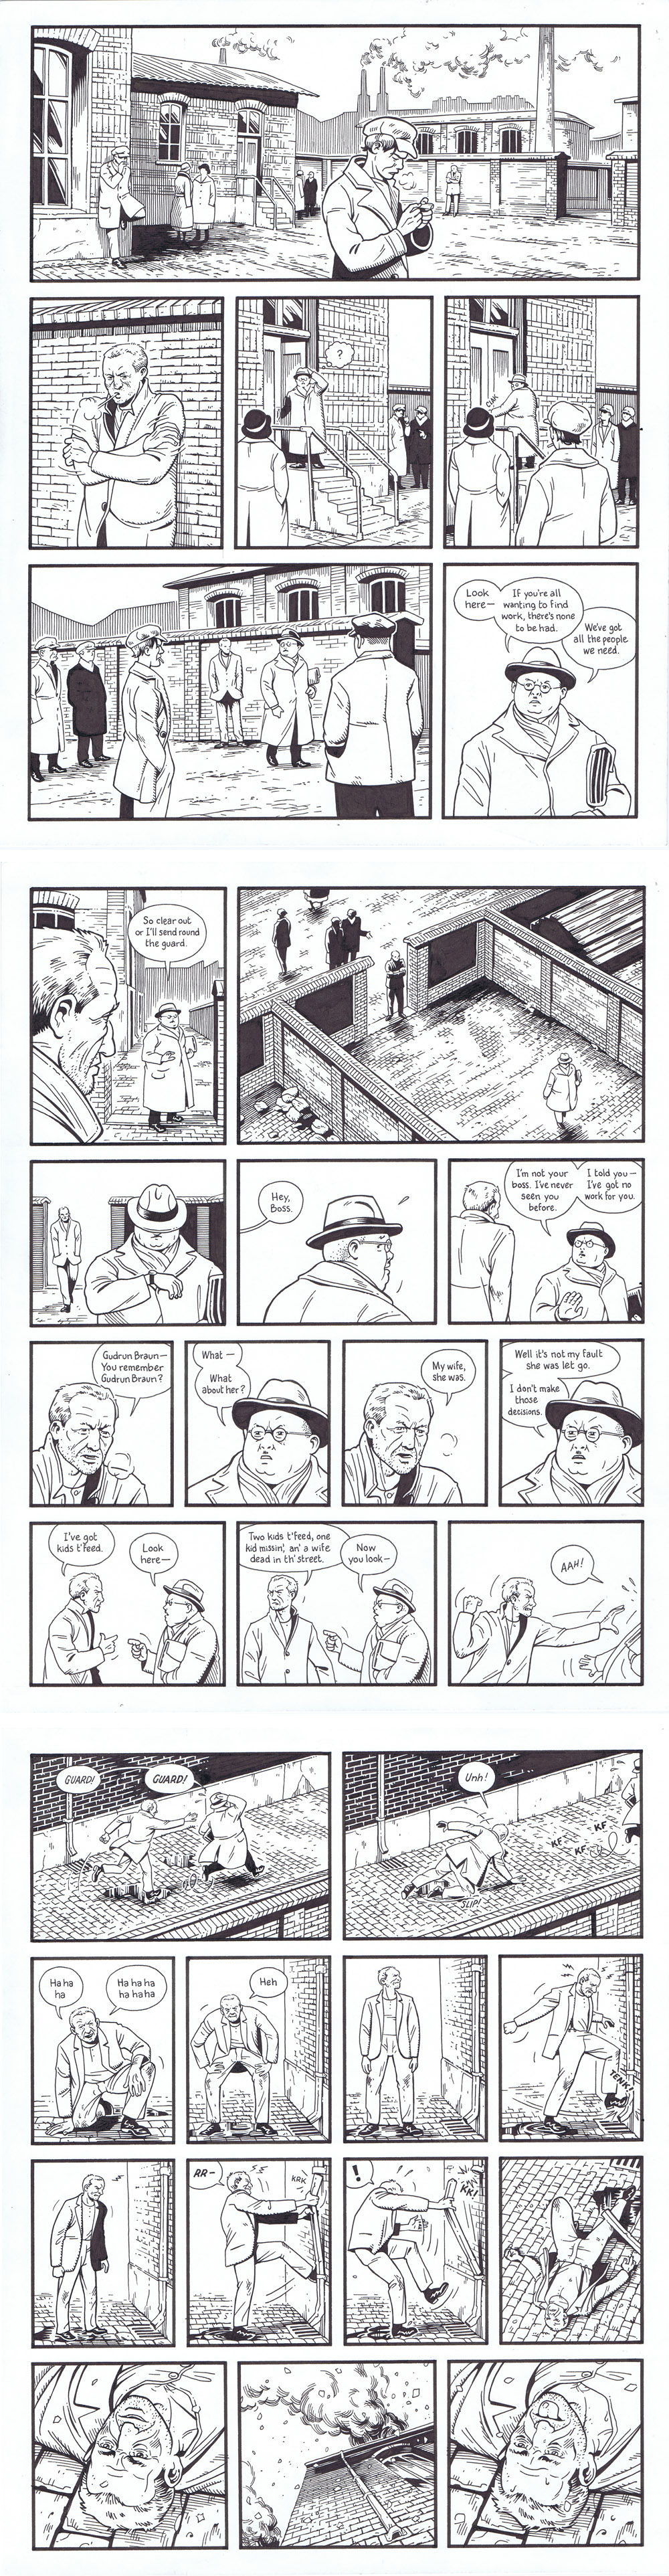 Berlin Book Two: City of Smoke - page 114-116